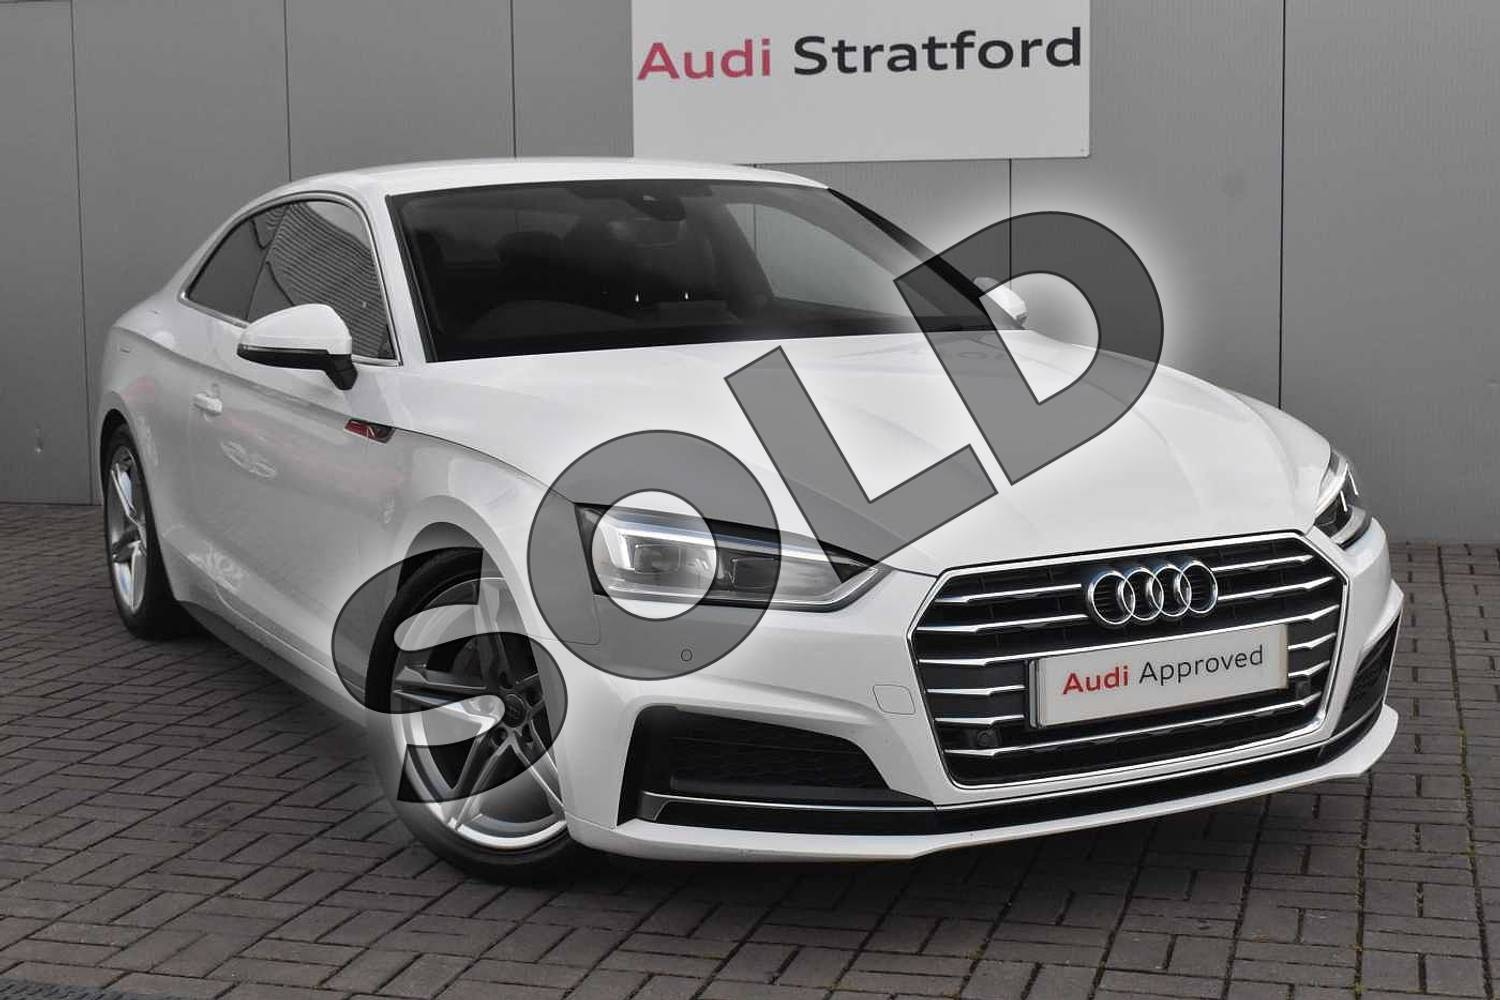 2018 Audi A5 Diesel Coupe 2.0 TDI S Line 2dr S Tronic in Ibis White at Stratford Audi